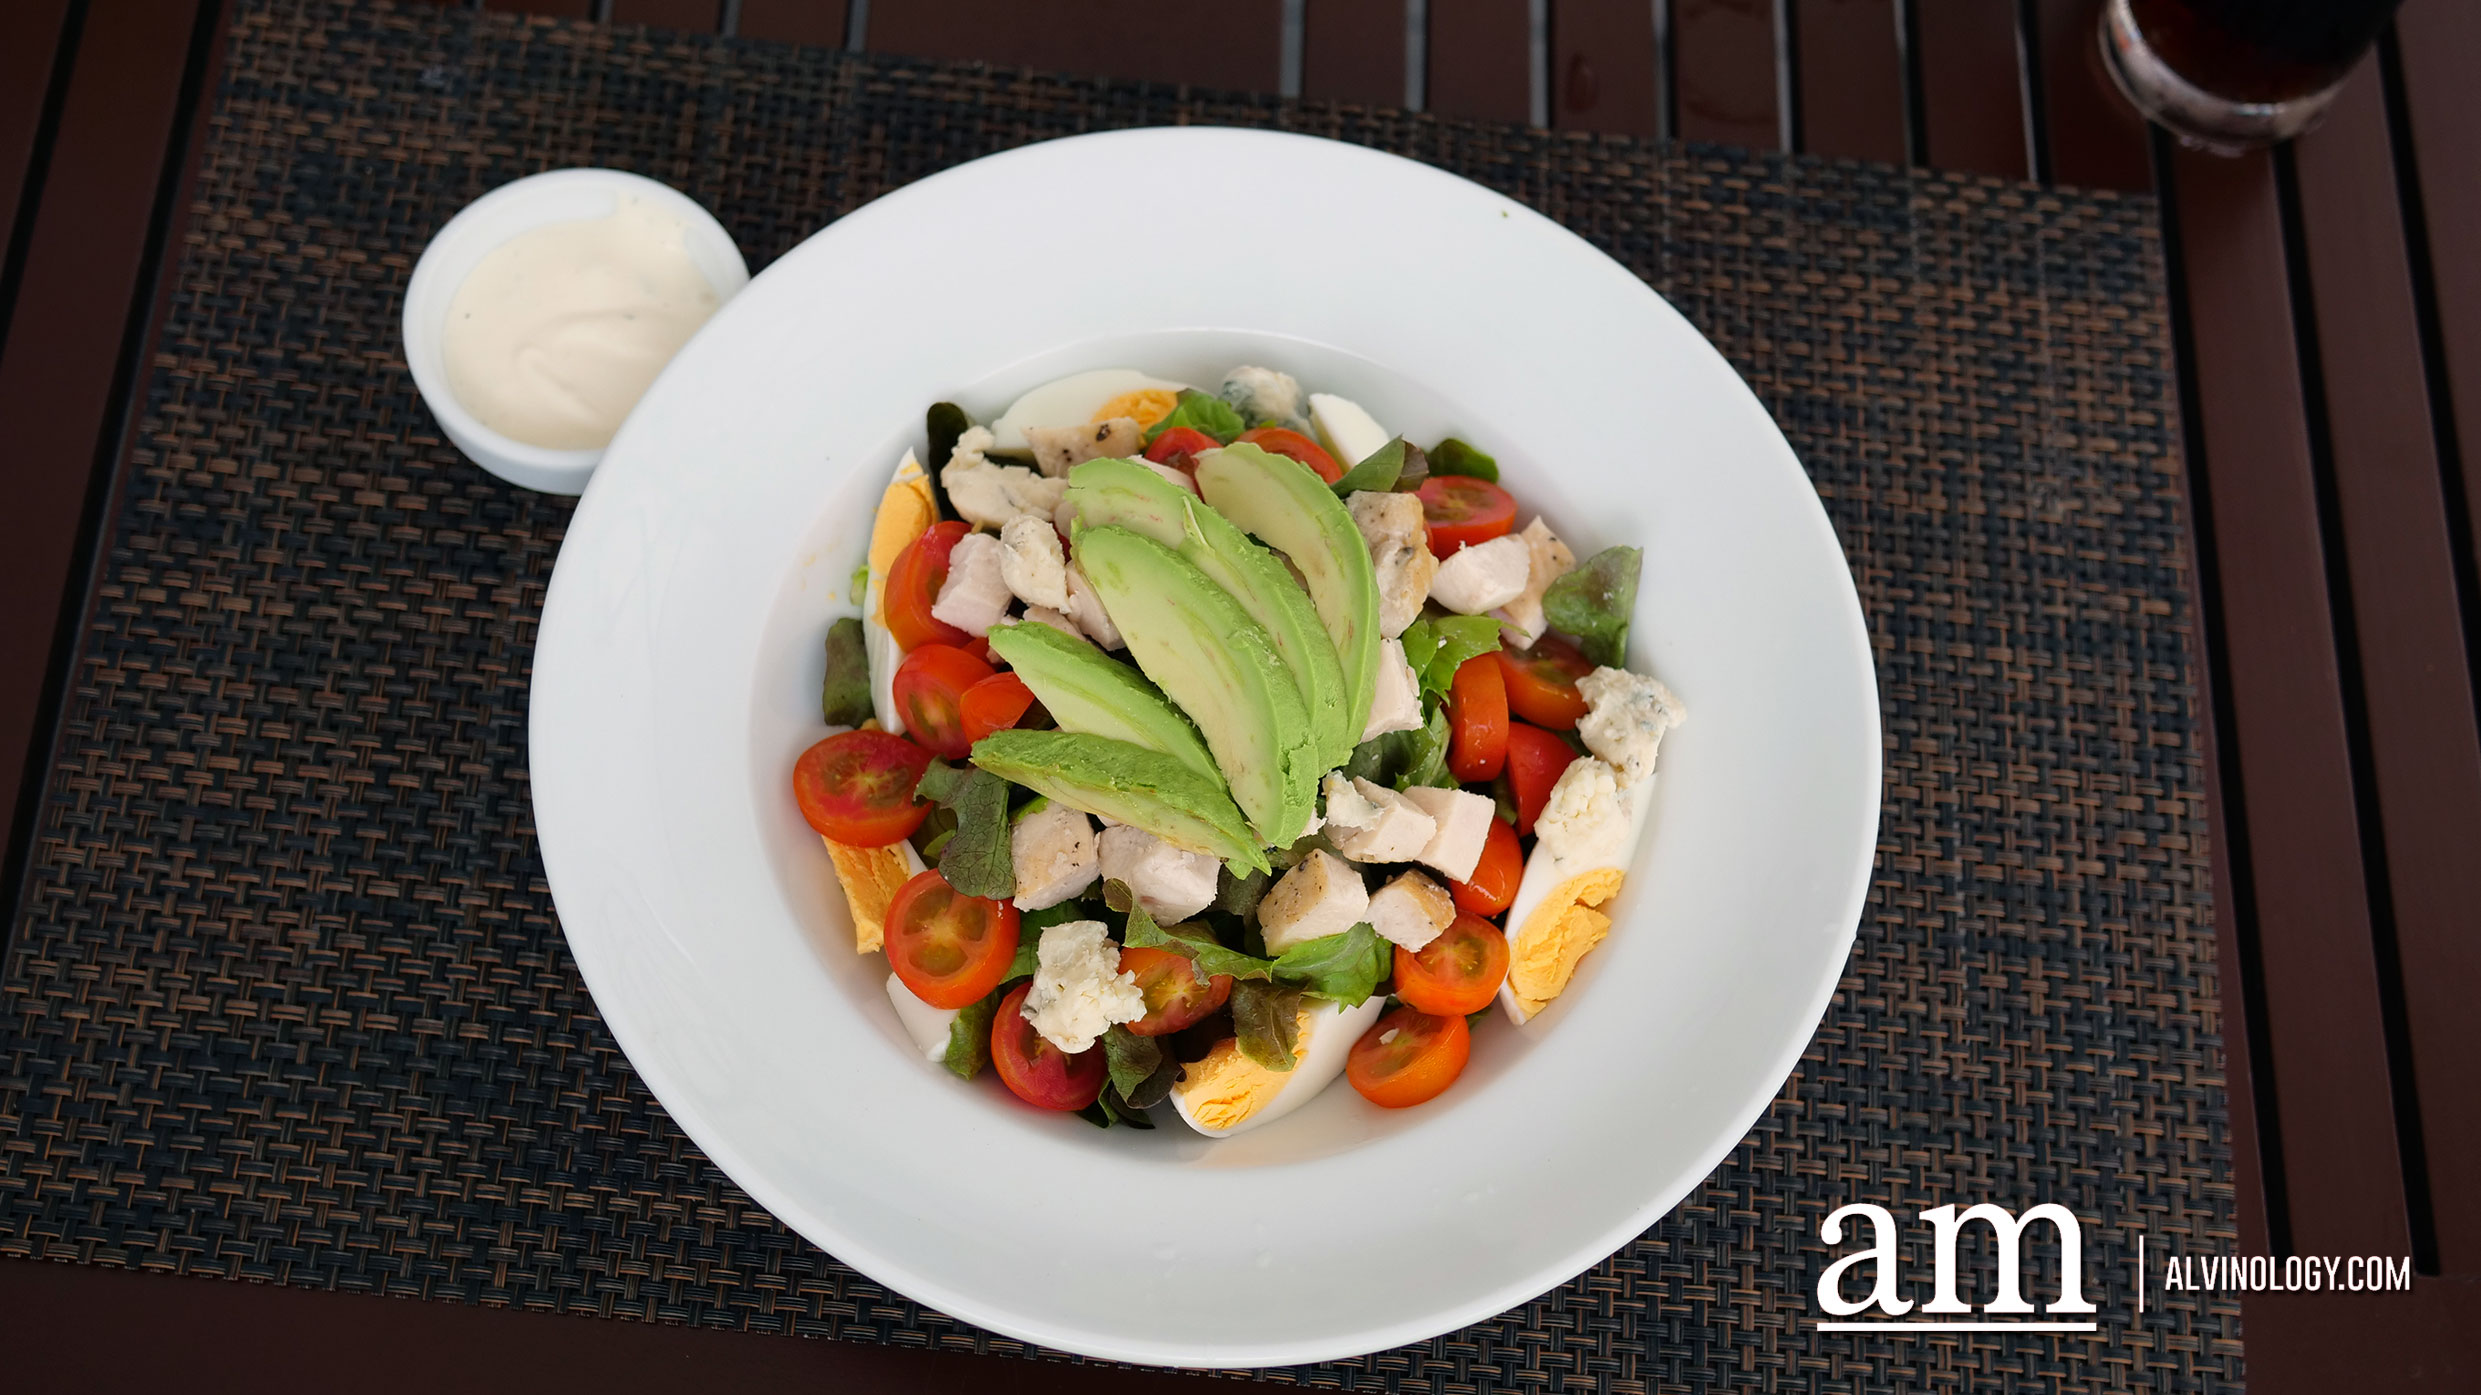 Cobb Salad (THB 289) - Chicken, blue cheese, avocado, romaine lettuce, tomato, hard-boiled egg with French dressing